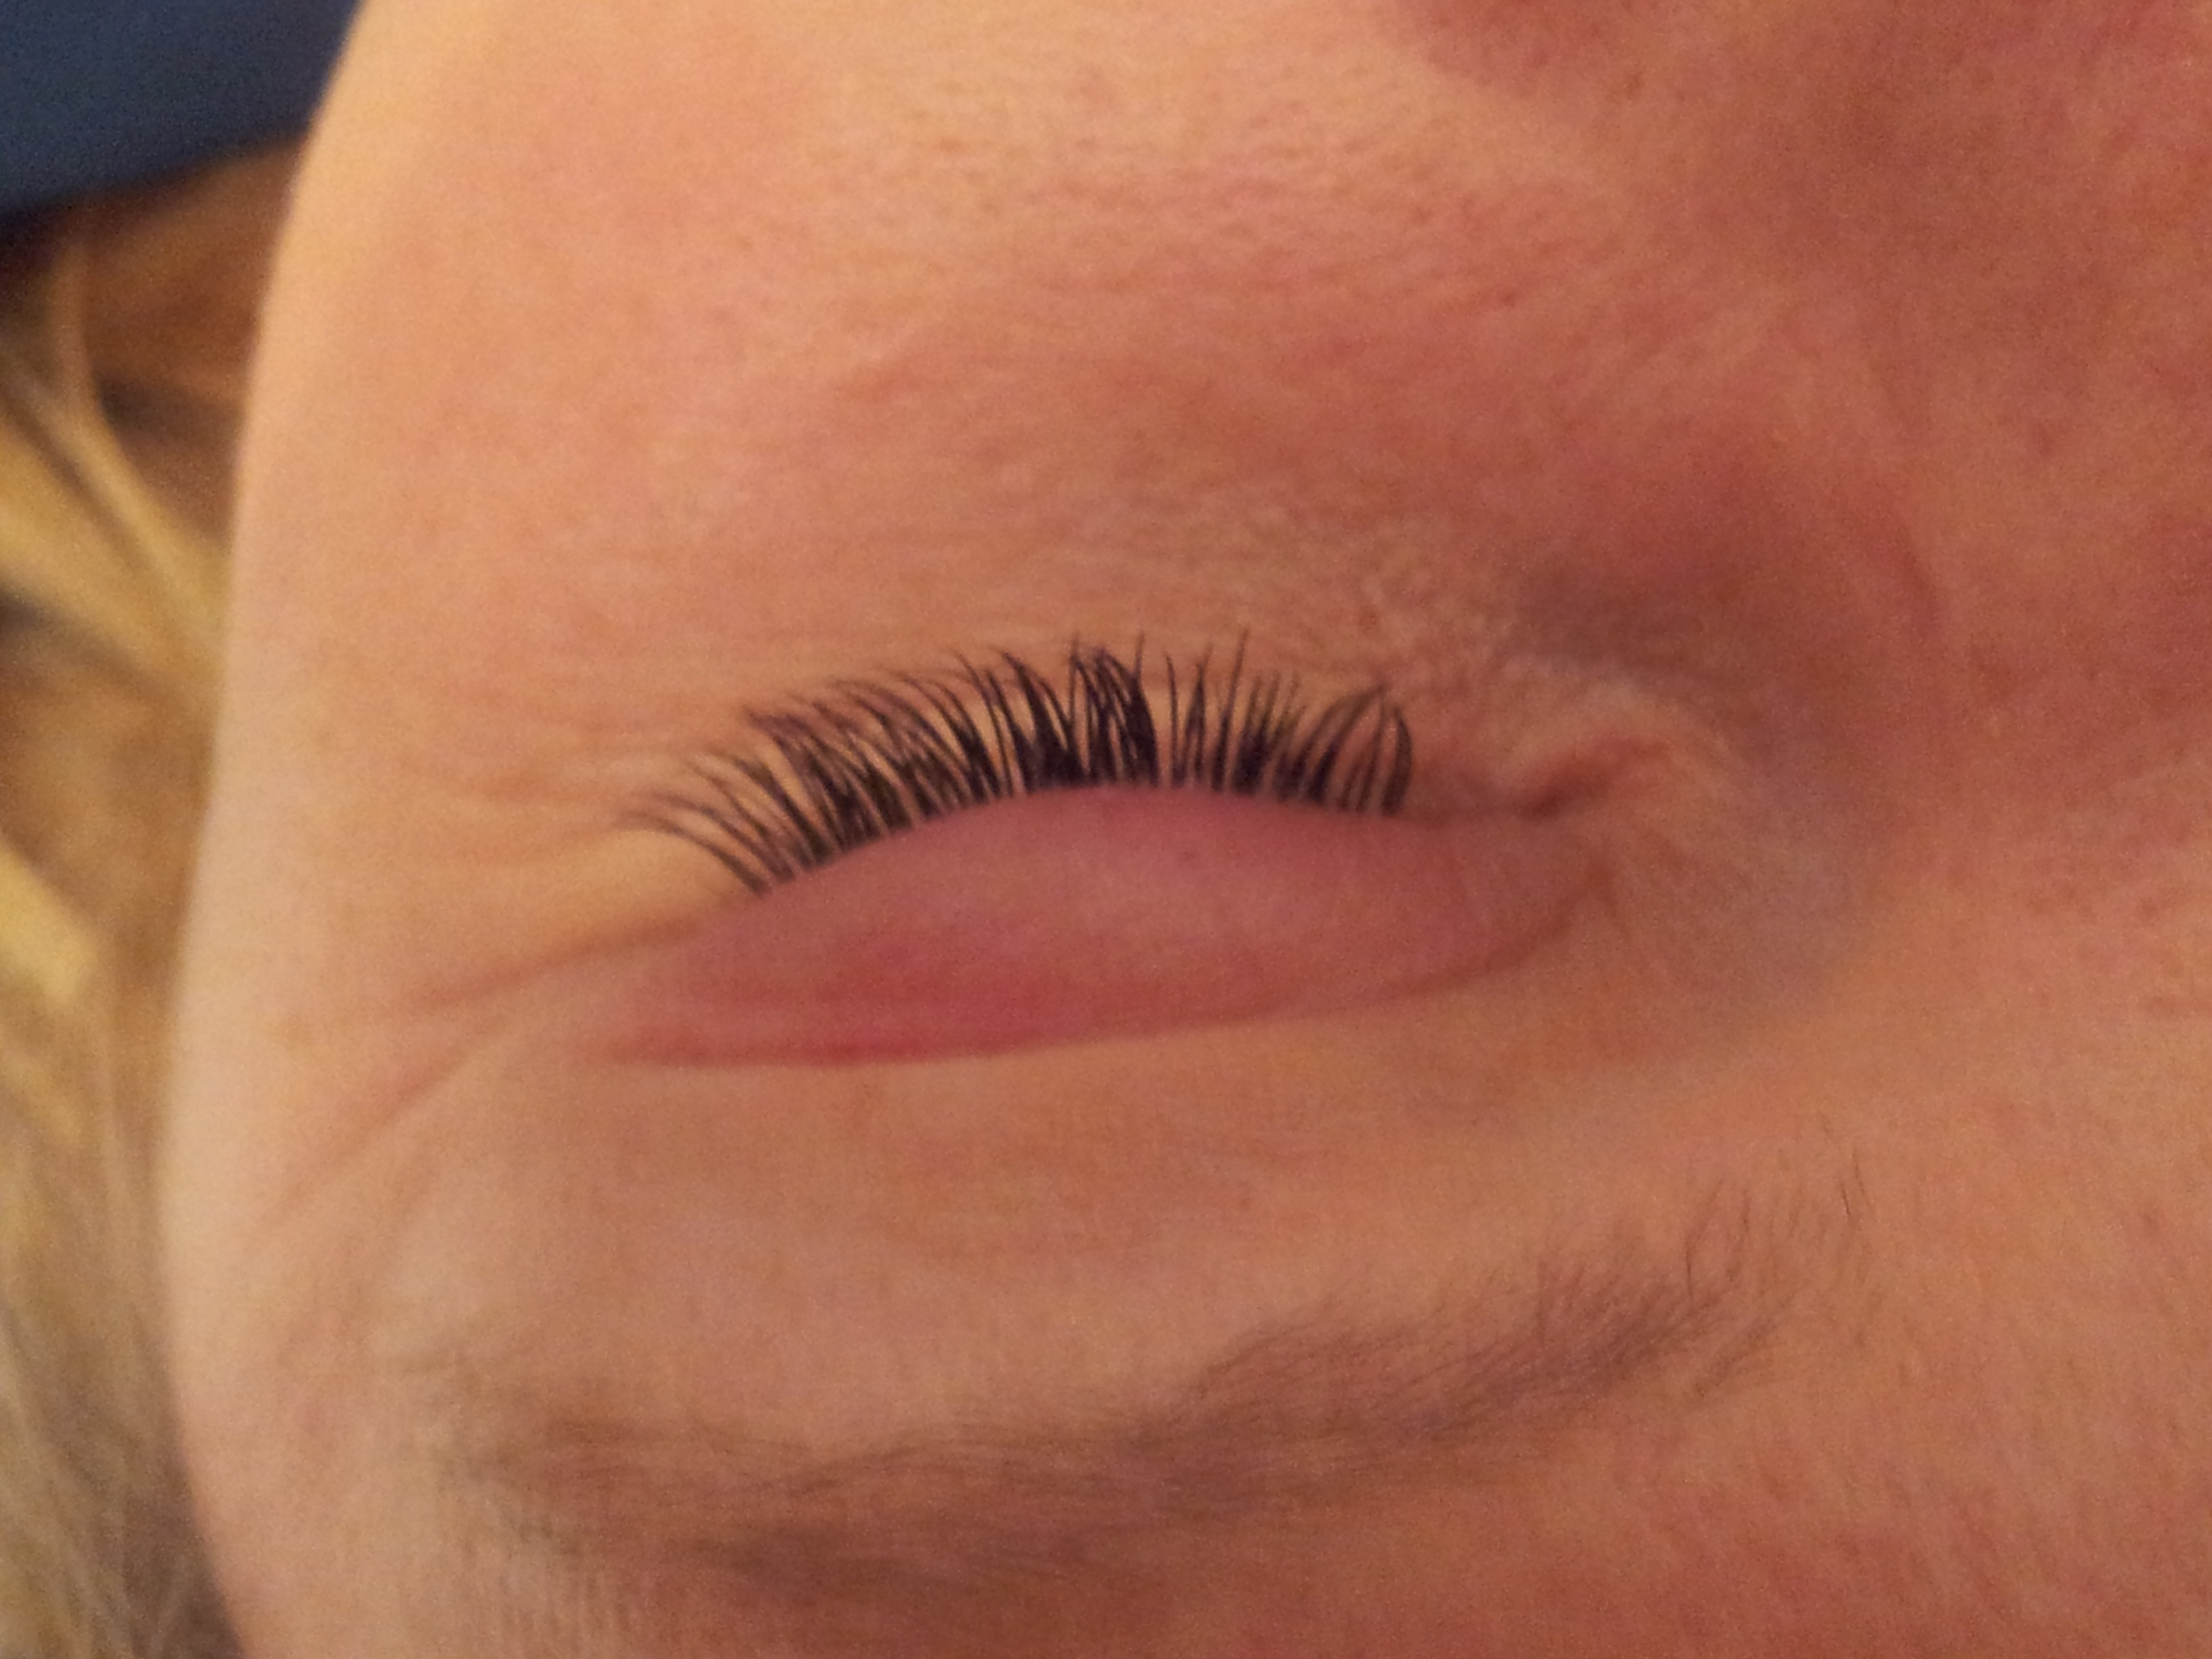 Allergic reactions to eyelash and brow treatments